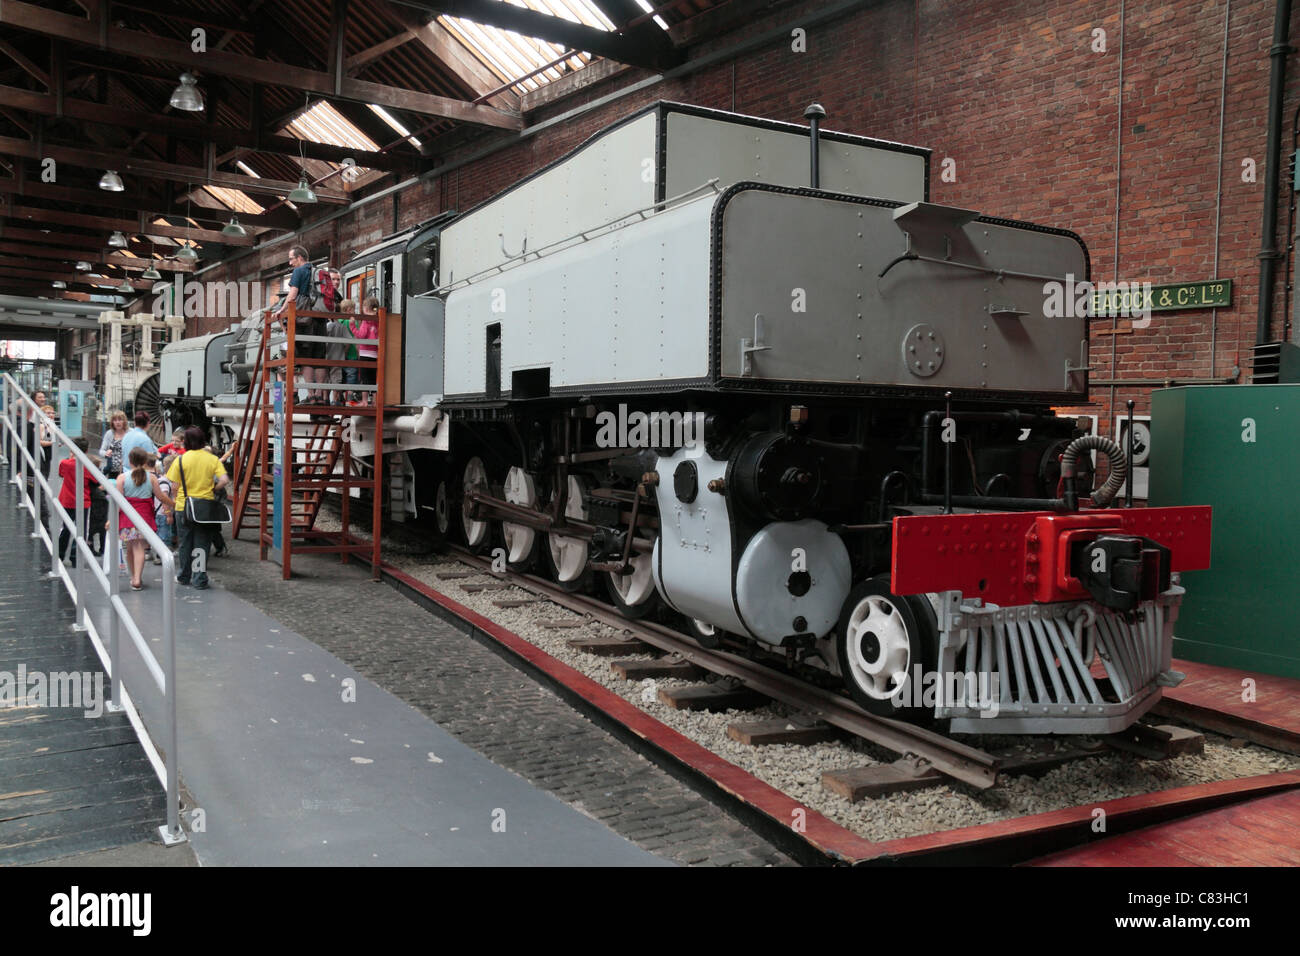 A Beyer-Gerratt locomotive, built in 1930, on display at the Museum of Science & Industry (MOSI), Manchester, - Stock Image